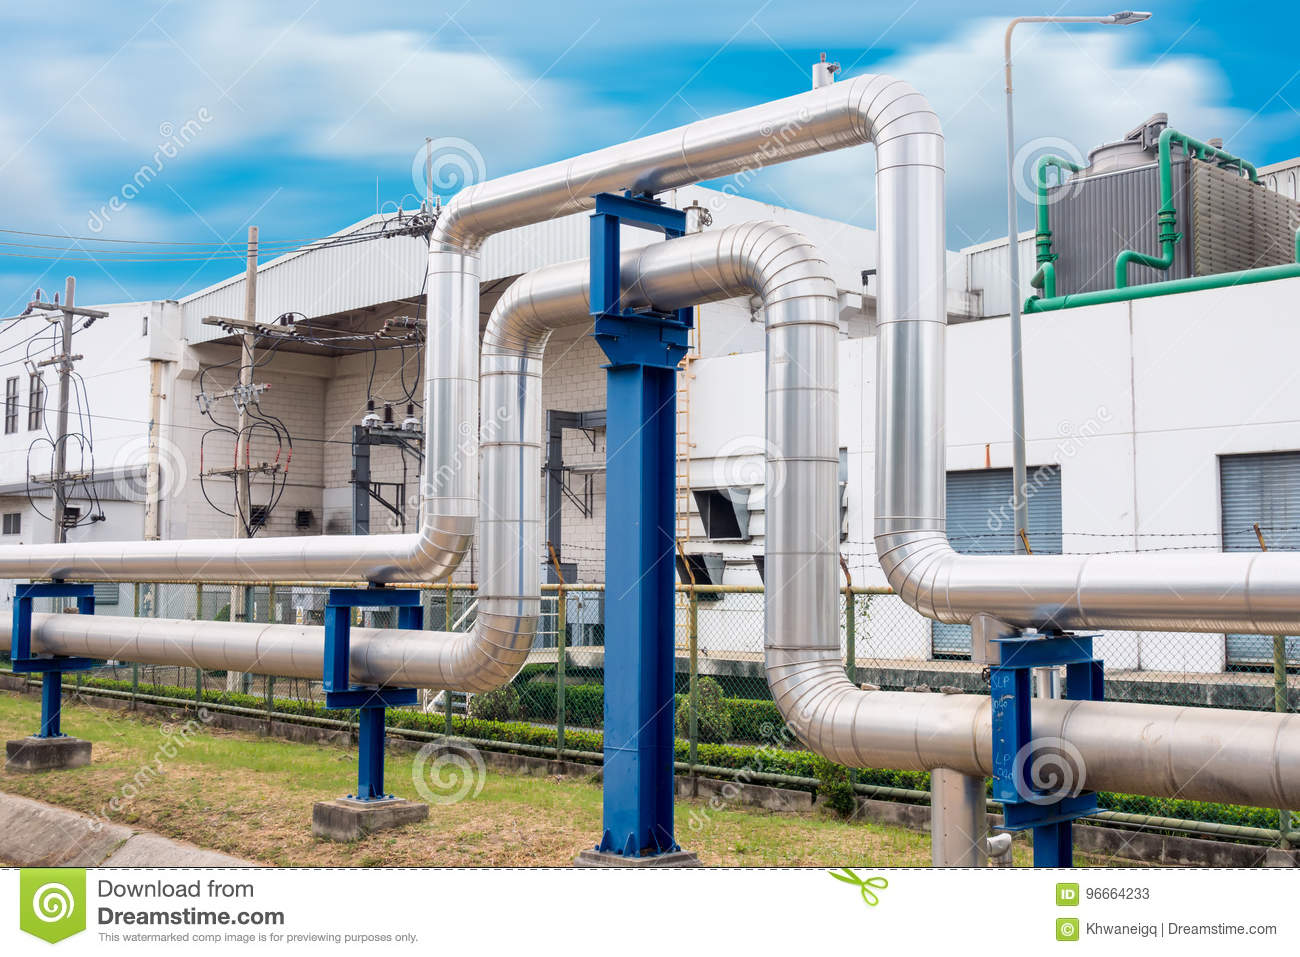 Steam Insulation And Loop Pipeline, Steam Pipe supply Stock